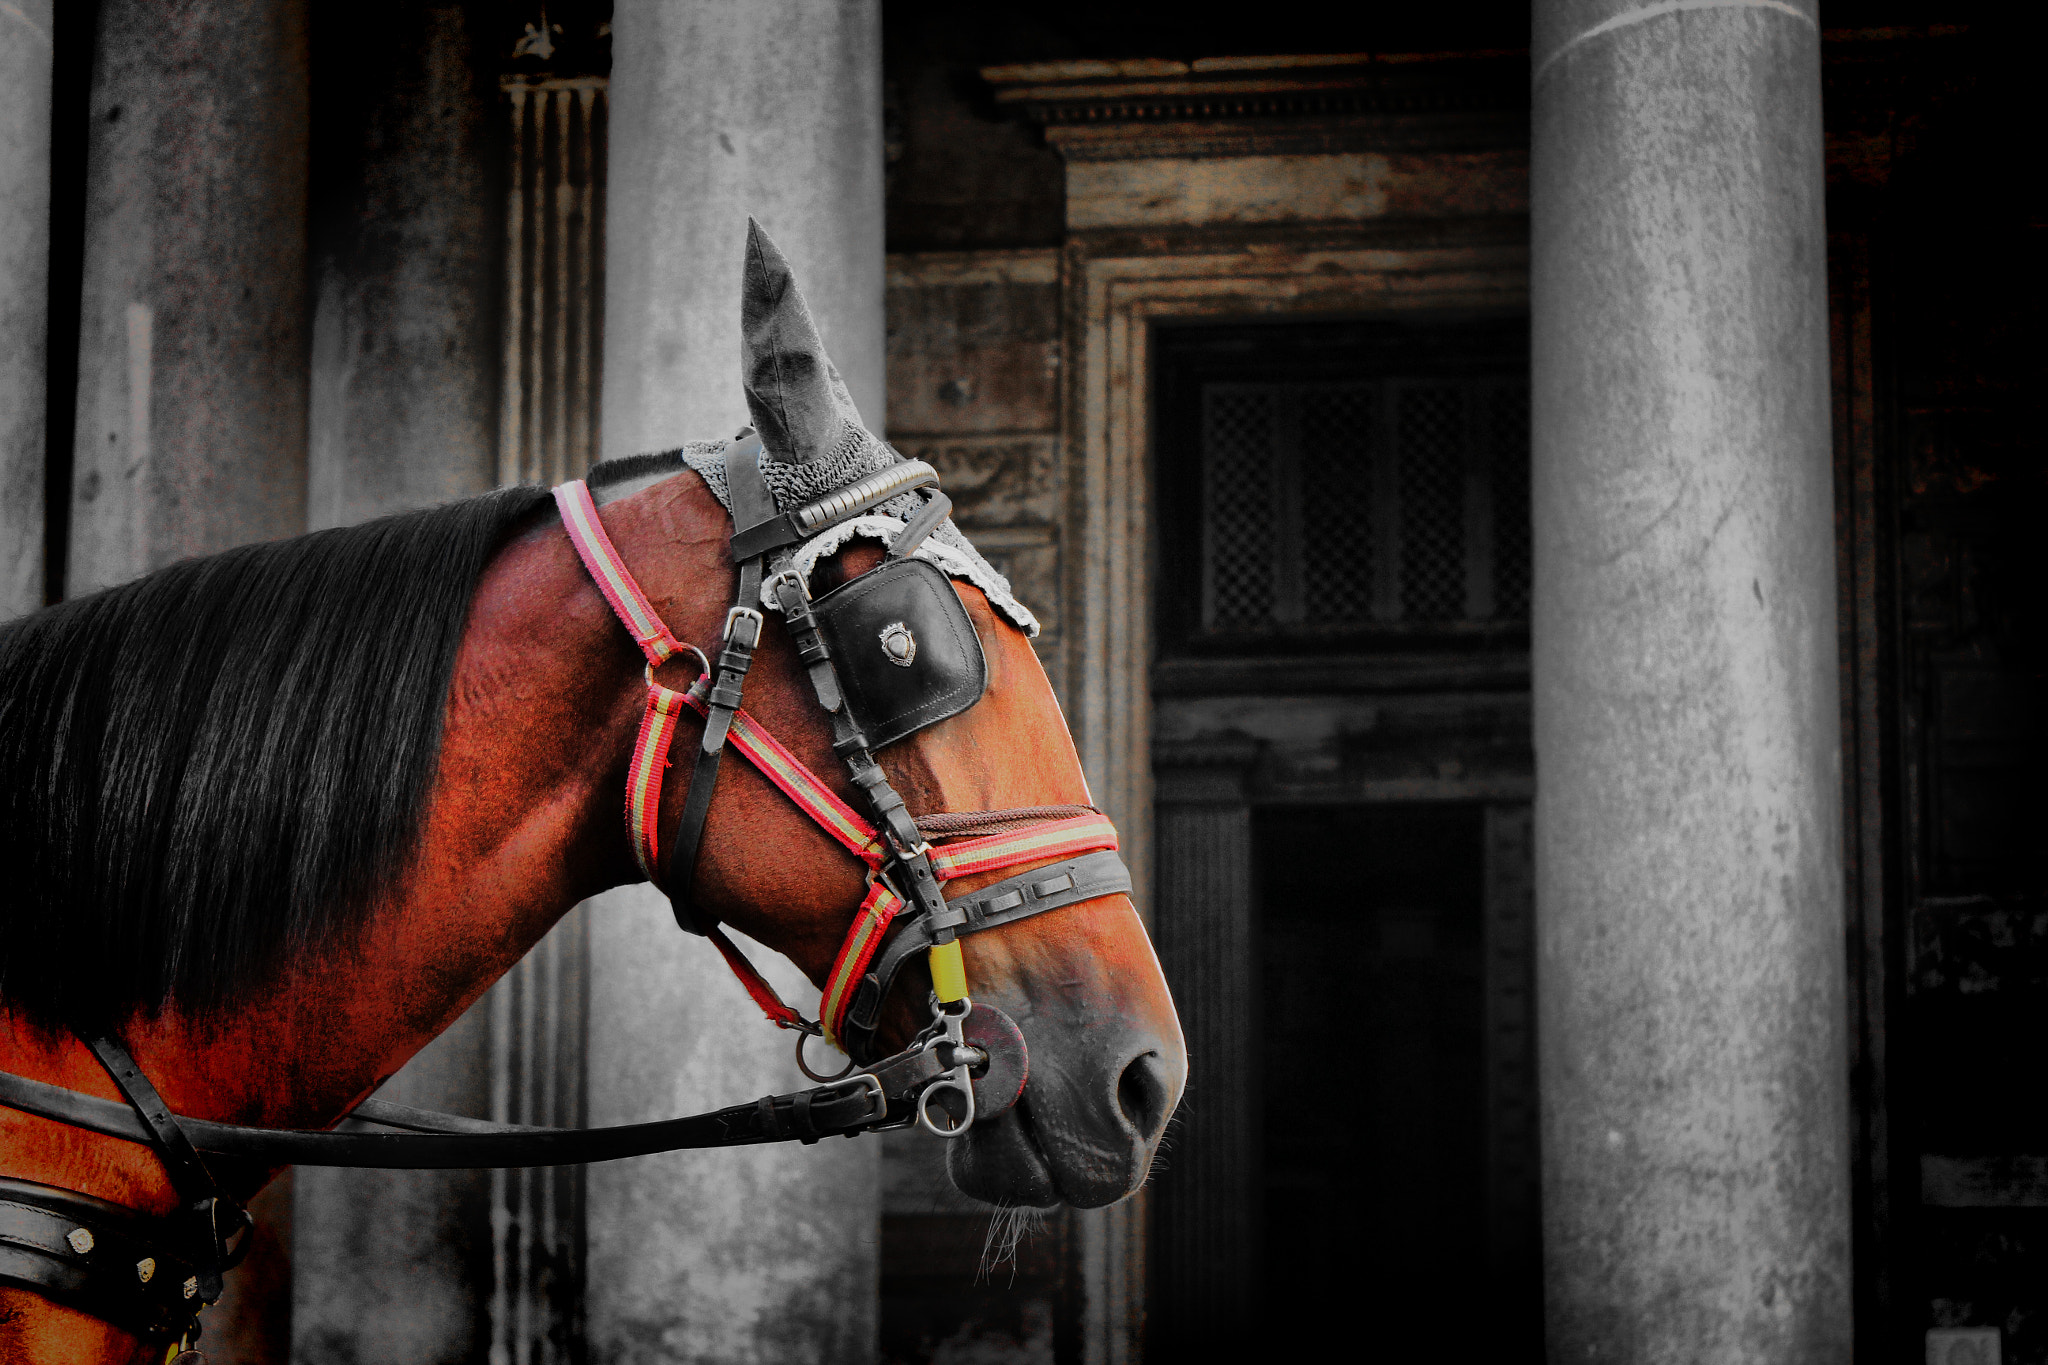 Photograph Horse to Rome by Tassan Giuseppe on 500px